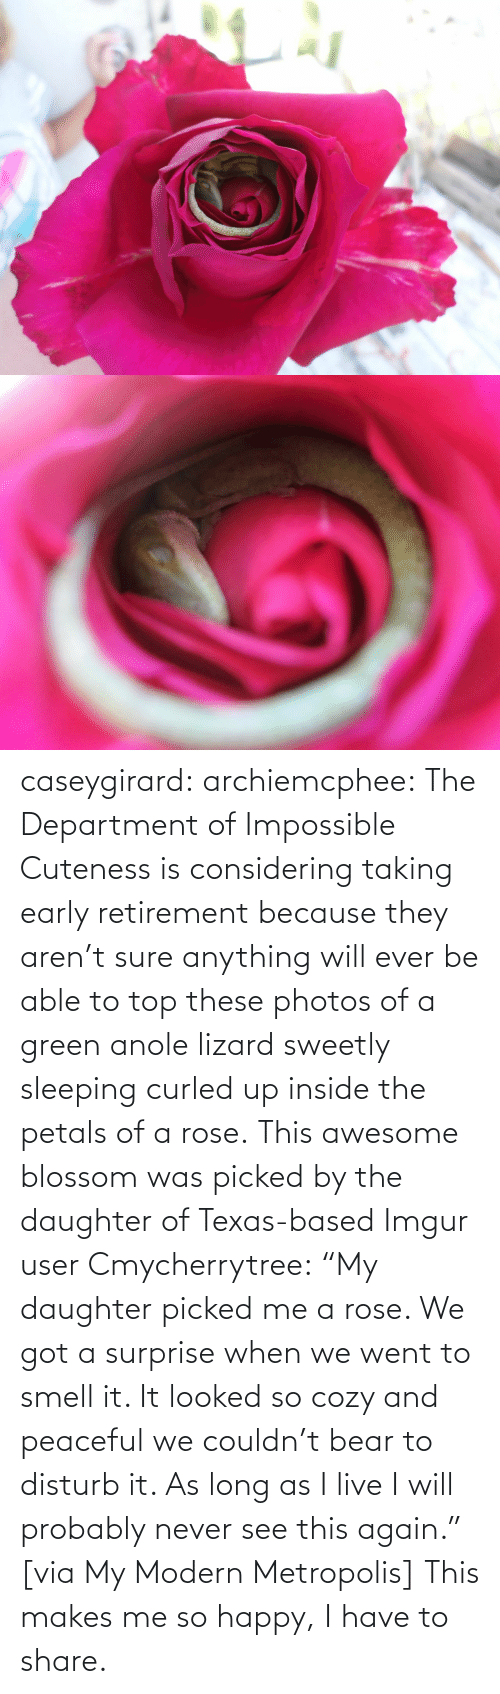 "wikipedia: caseygirard:  archiemcphee:   The Department of Impossible Cuteness is considering taking early retirement because they aren't sure anything will ever be able to top these photos of a green anole lizard sweetly sleeping curled up inside the petals of a rose. This awesome blossom was picked by the daughter of Texas-based Imgur user Cmycherrytree: ""My daughter picked me a rose. We got a surprise when we went to smell it. It looked so cozy and peaceful we couldn't bear to disturb it. As long as I live I will probably never see this again."" [via My Modern Metropolis]   This makes me so happy, I have to share."